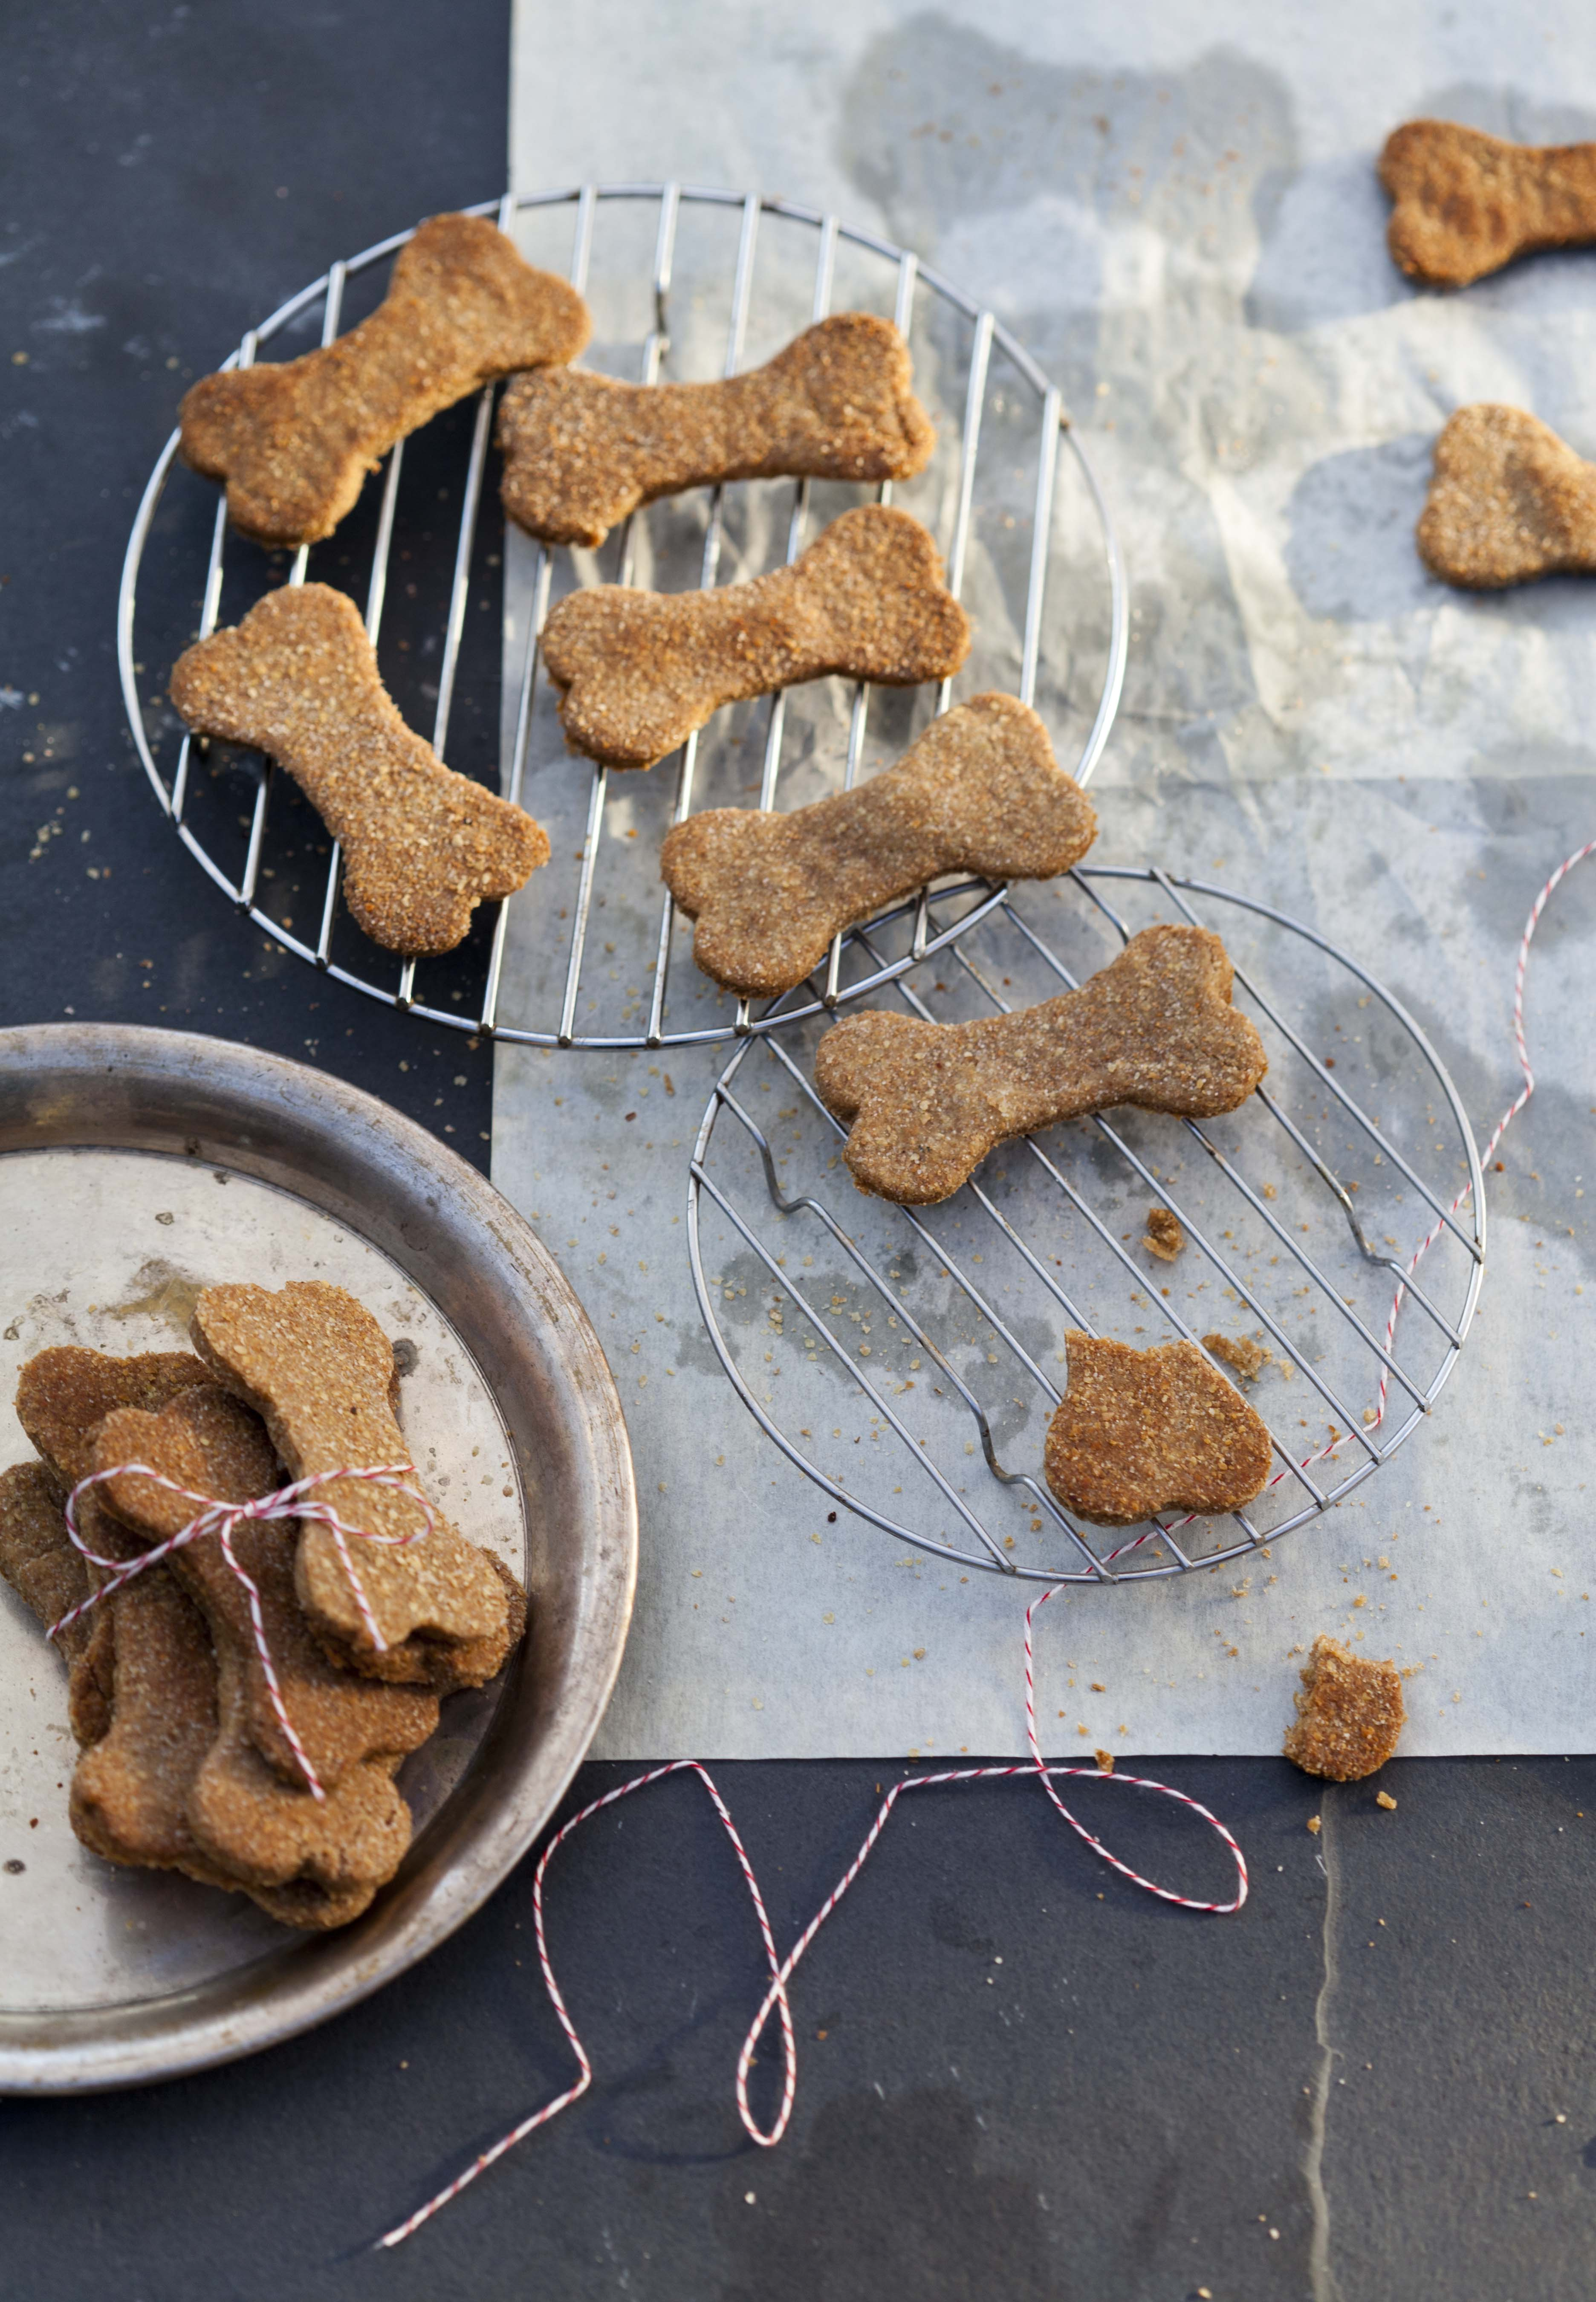 Cookies For Canines: 9 Homemade Dog Treat Recipes | Kitchn